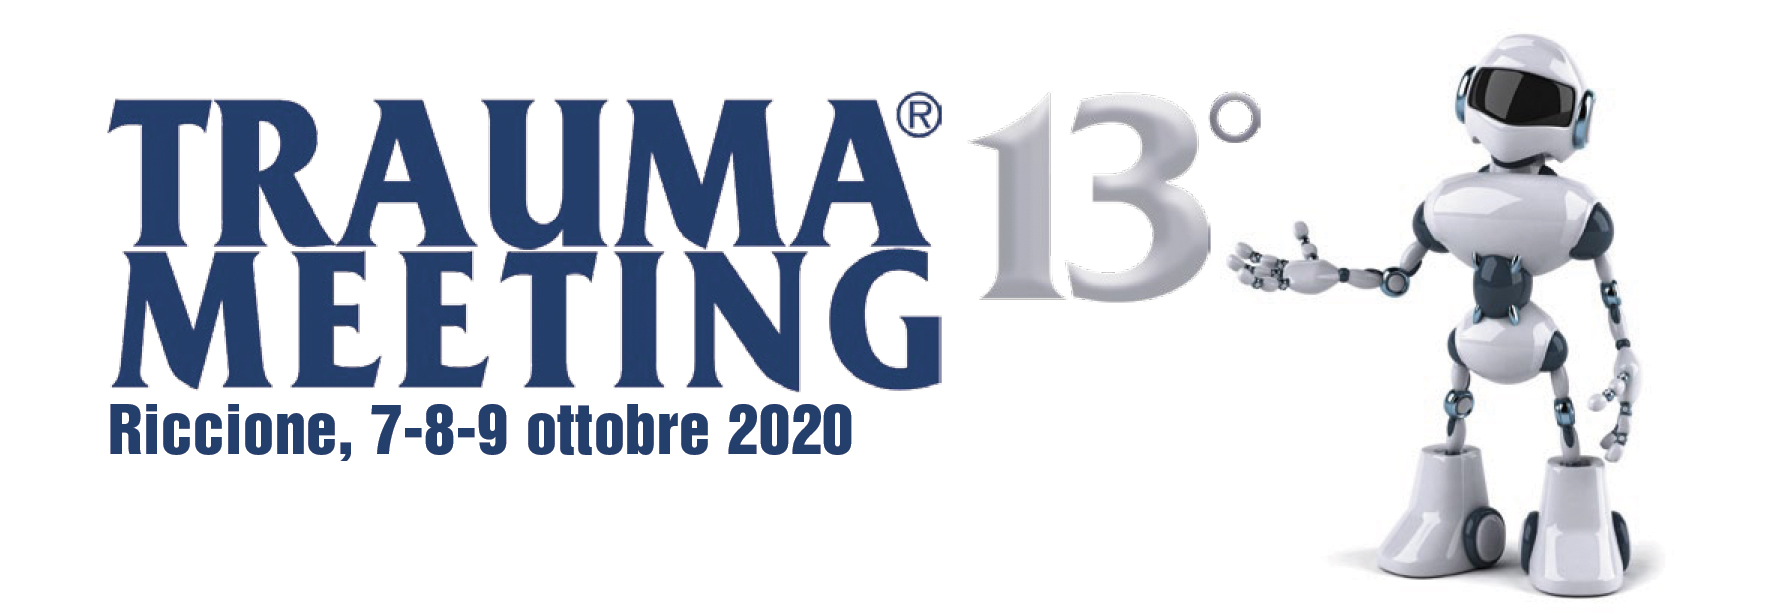 TRAUMA MEETING 2020